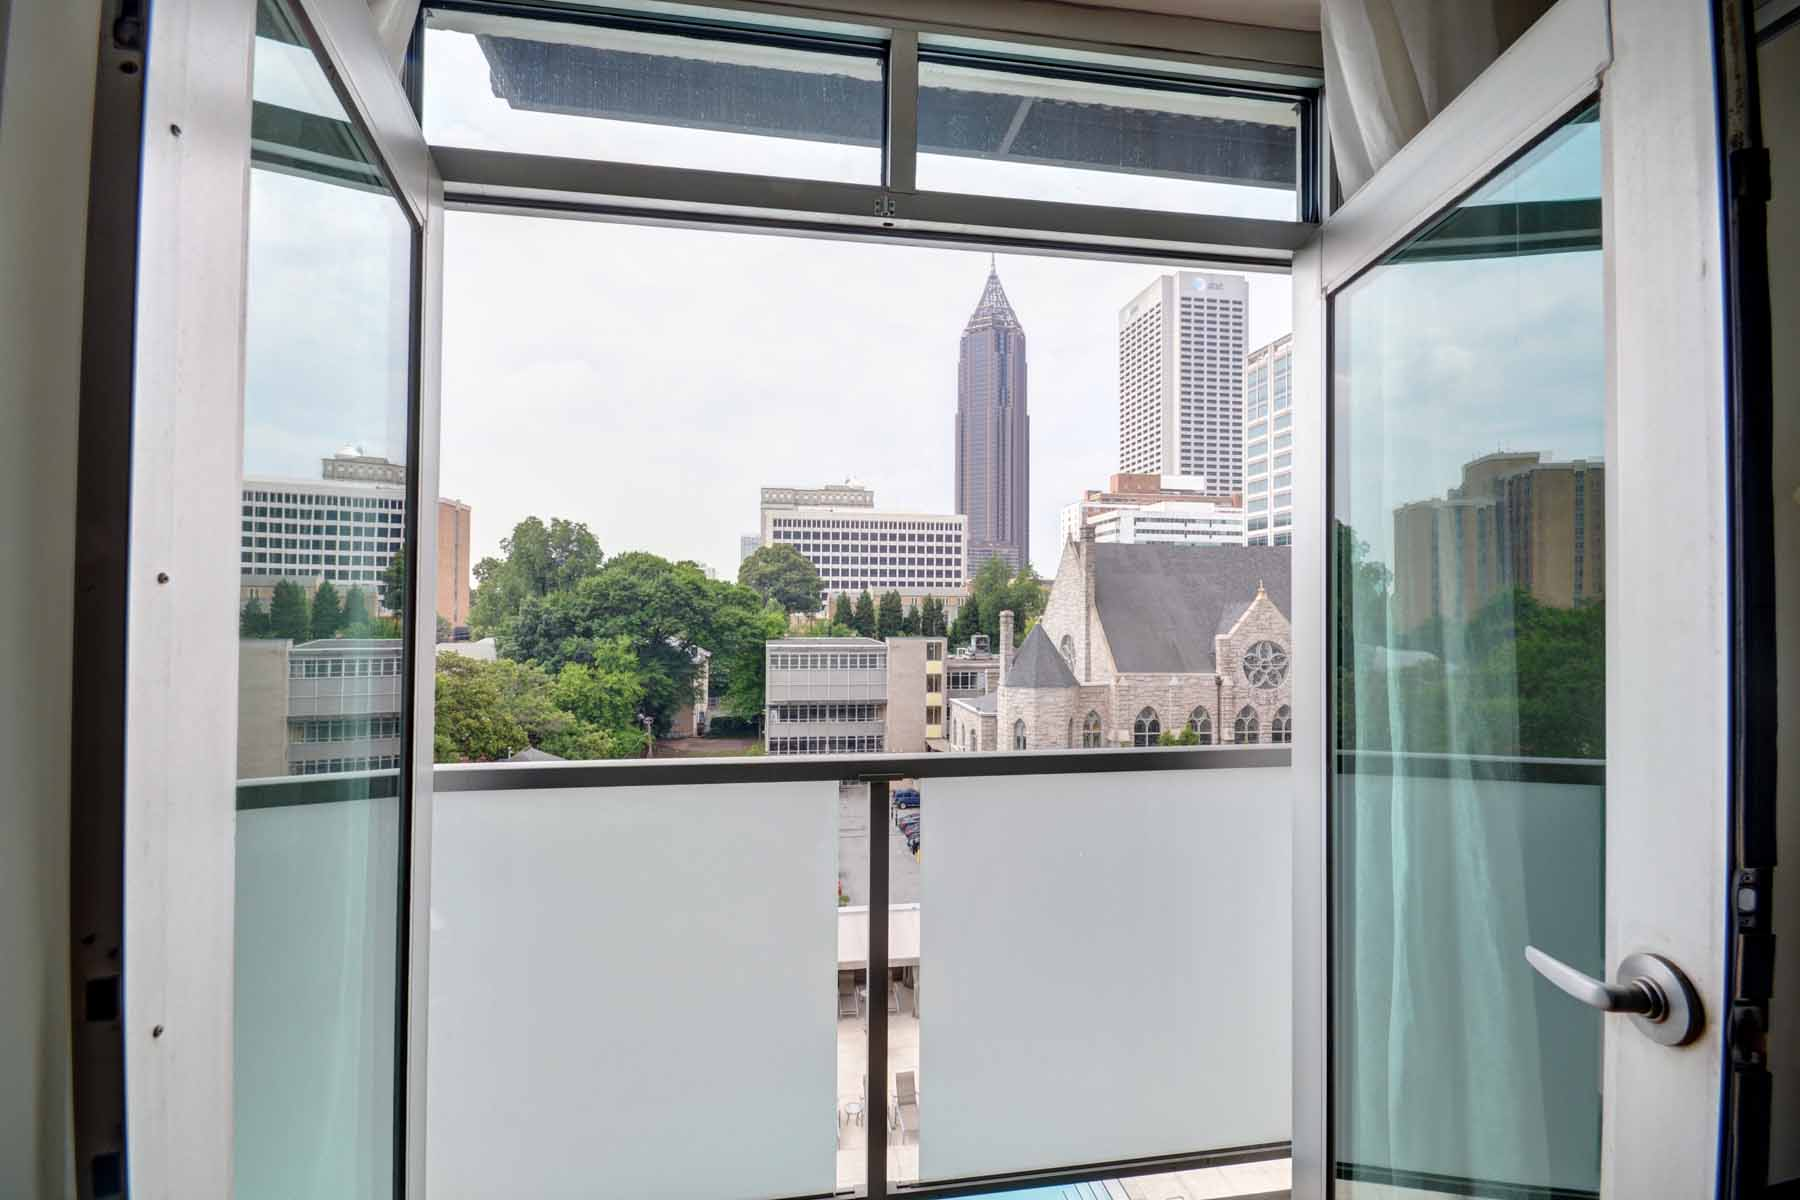 Additional photo for property listing at Beautiful 3-Bedroom3-Bath Combined Corner Unit at 805 Peachtree! 805 Peachtree Street NE Unit 504503 Atlanta, Georgia 30308 Stati Uniti